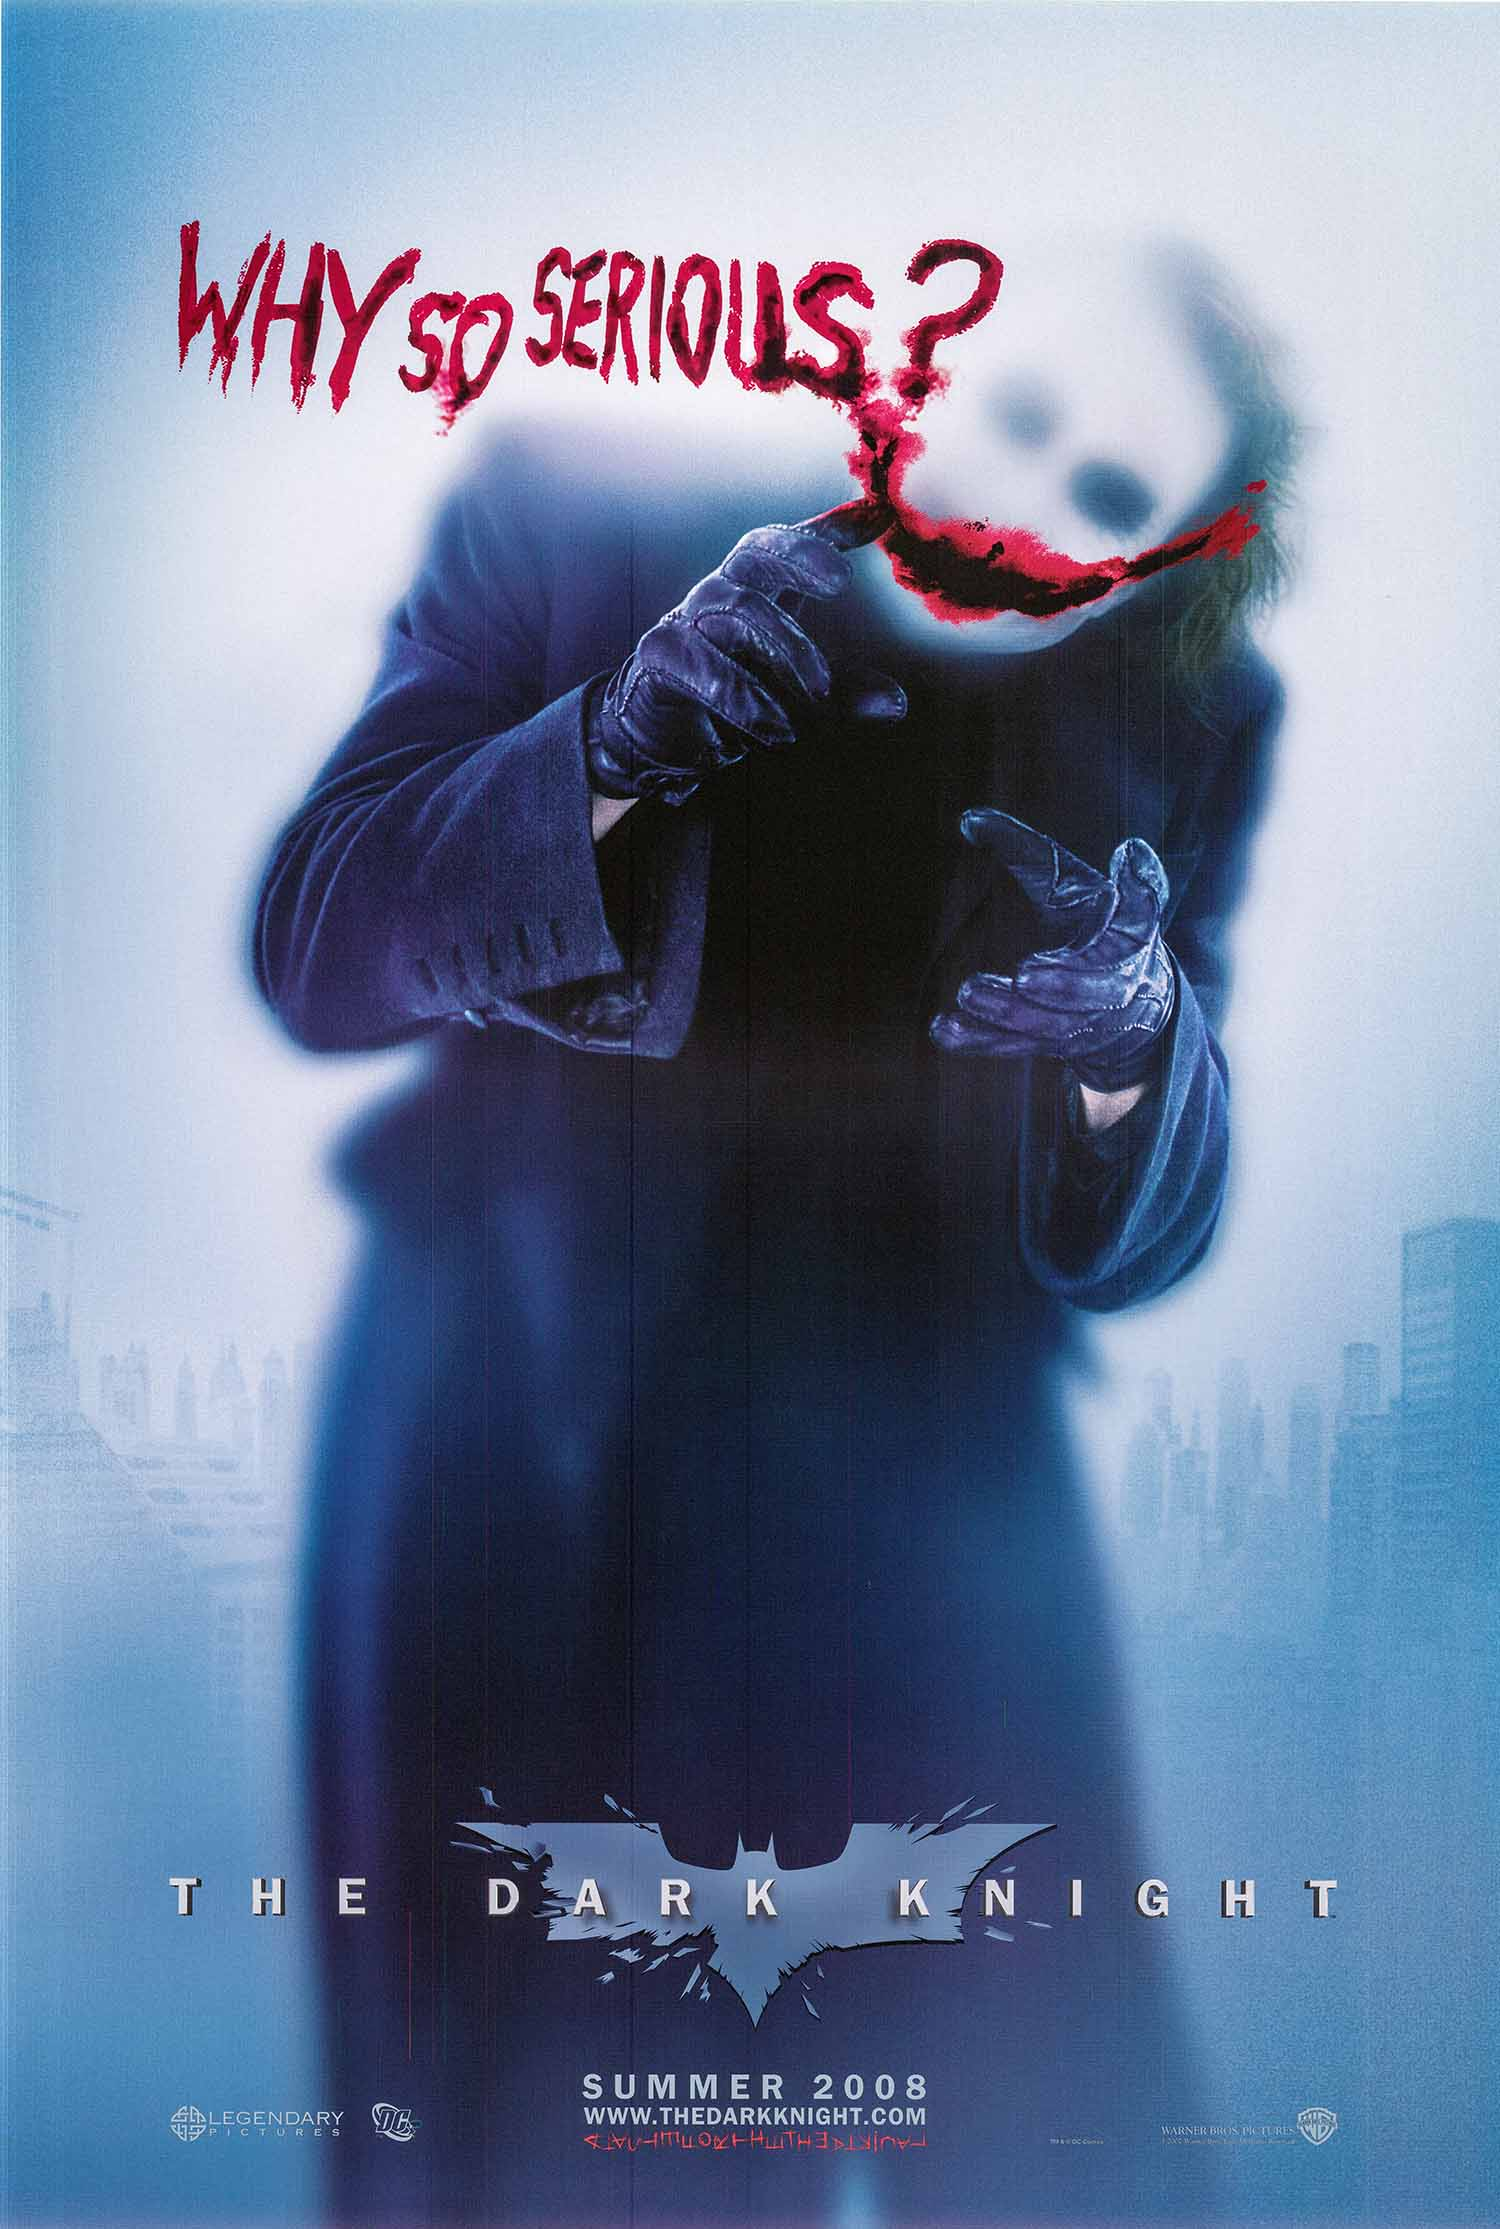 Pictured is the advance blurry joker style US one-sheet promotional poster for the 2008 Christopher Nolan film The Dark Knight starring Christian Bale and Heath Ledger.